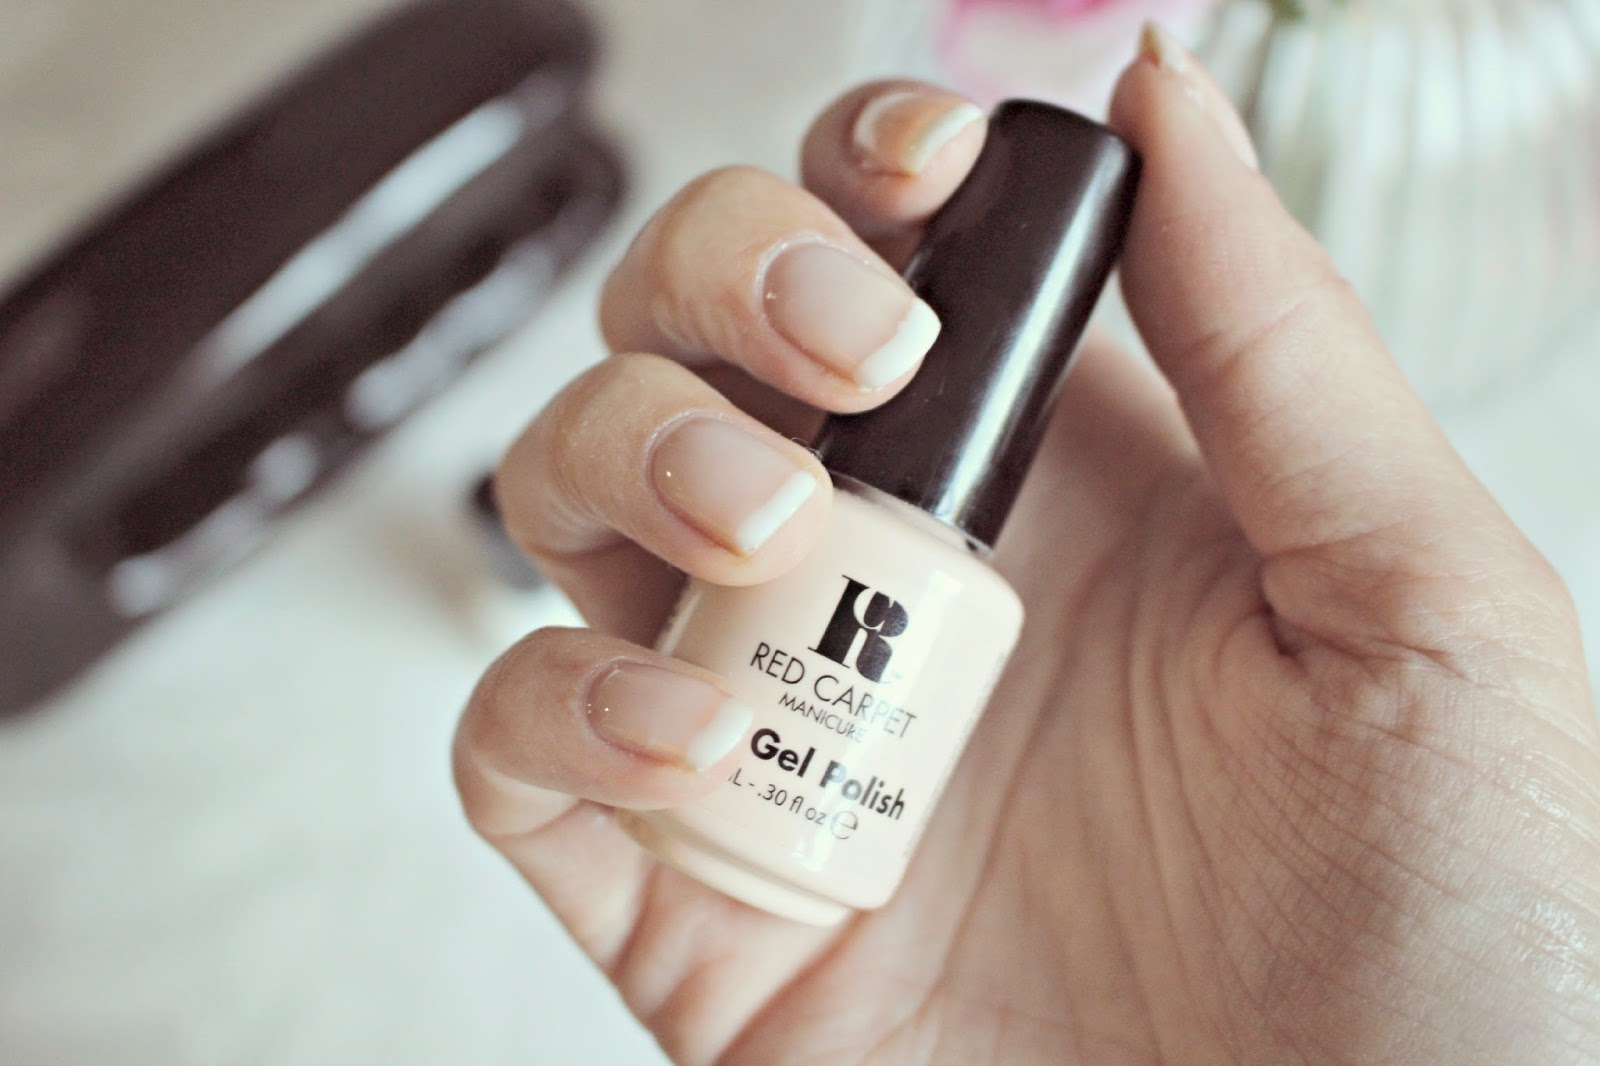 French Manicure Gel Nails At Home